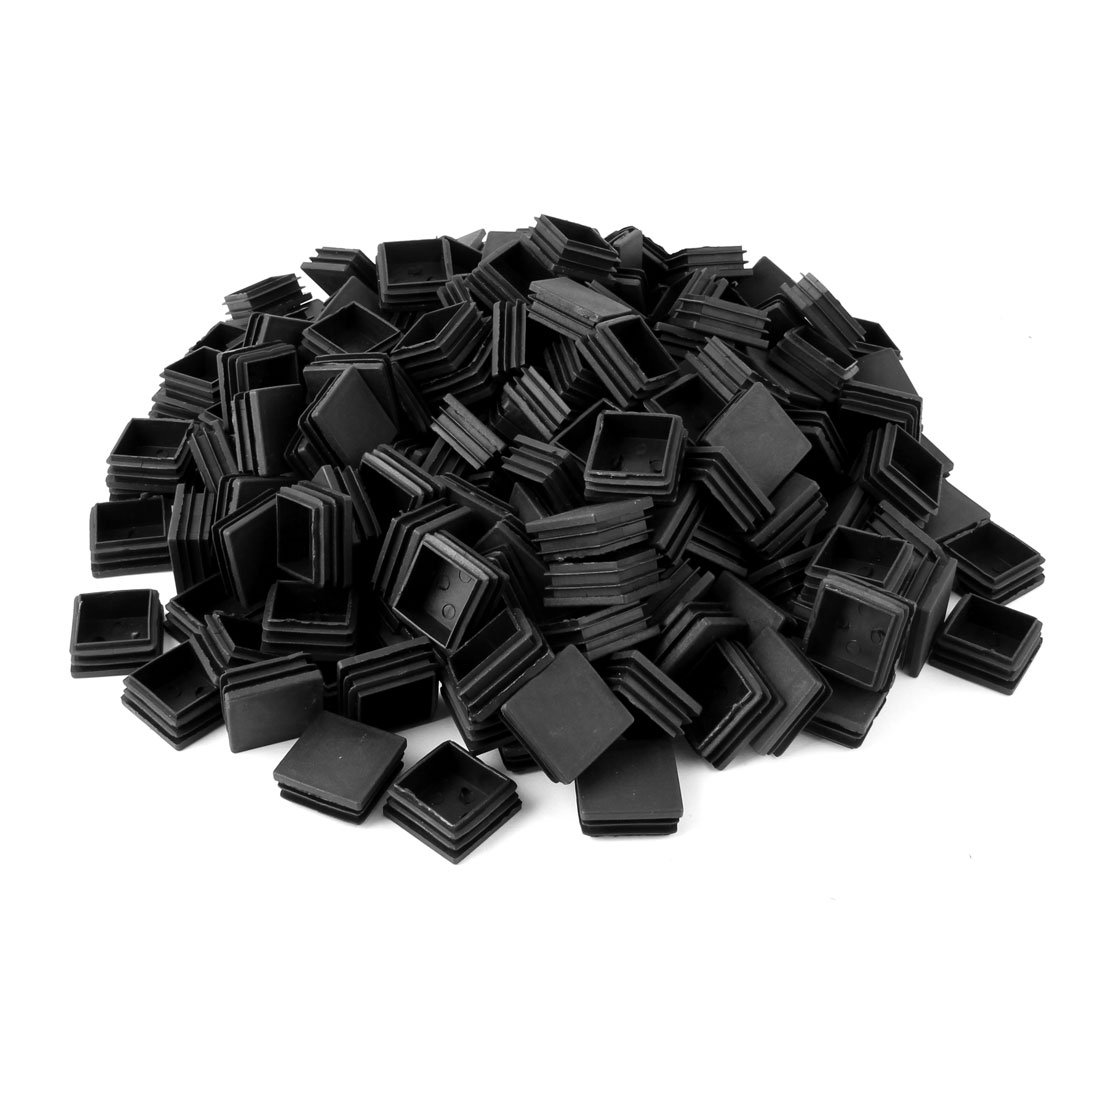 uxcell Plastic Home Office Square Table Chair Legs Tube Insert 38 x 38mm 200 Pcs Black